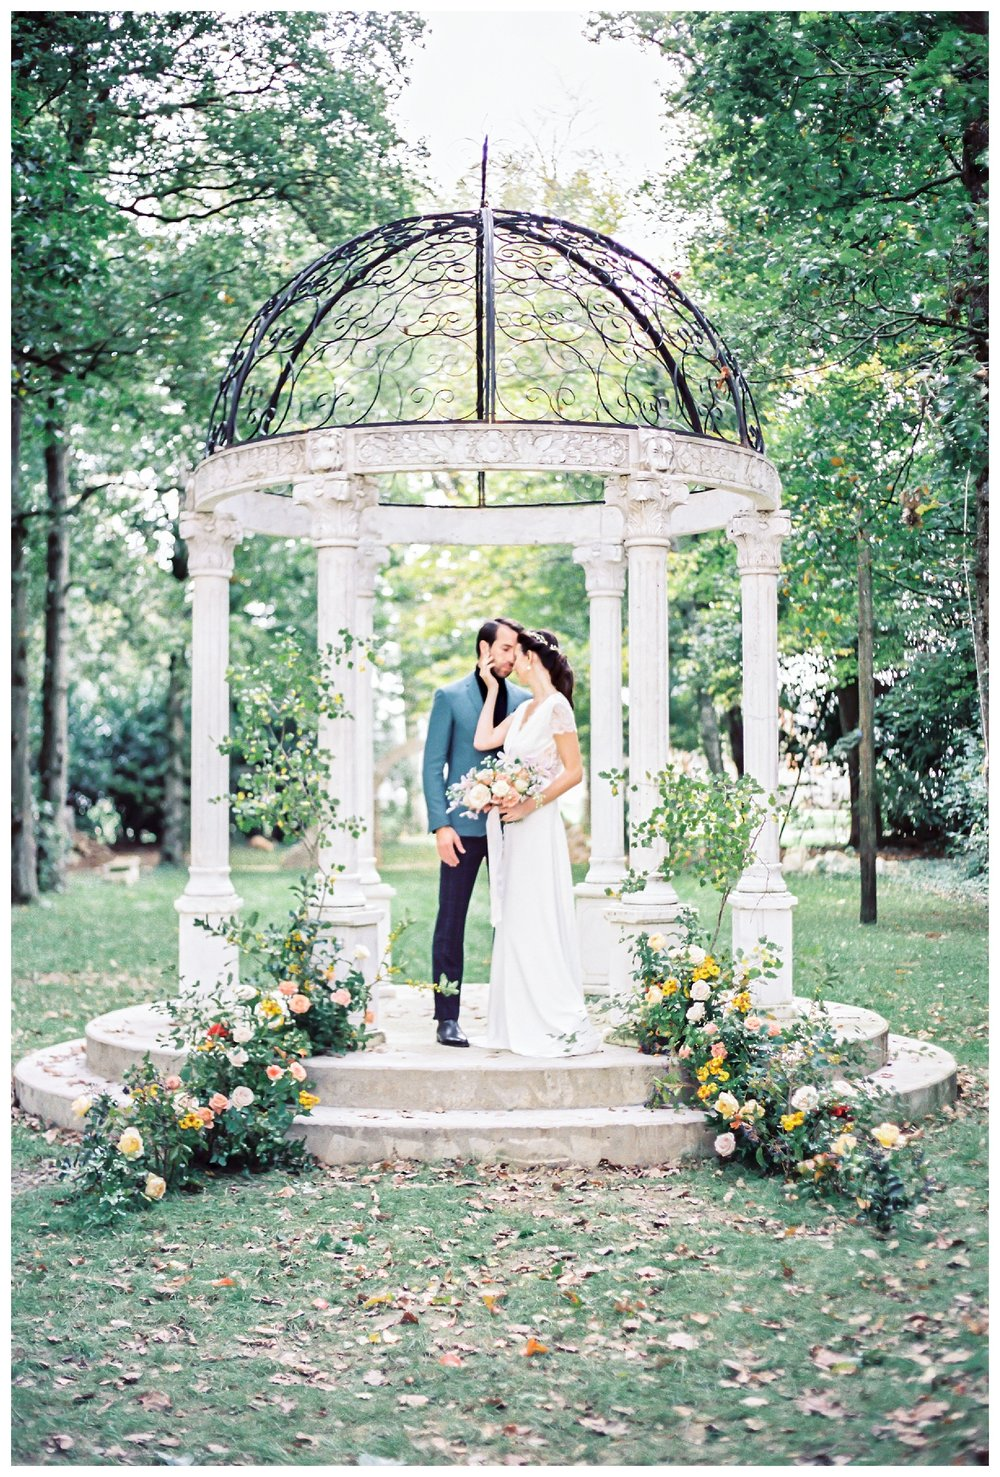 Arbour in Chateau Barthelemy Gardens - Jacqueline Anne Photography - Nova Scotia Wedding Photographer